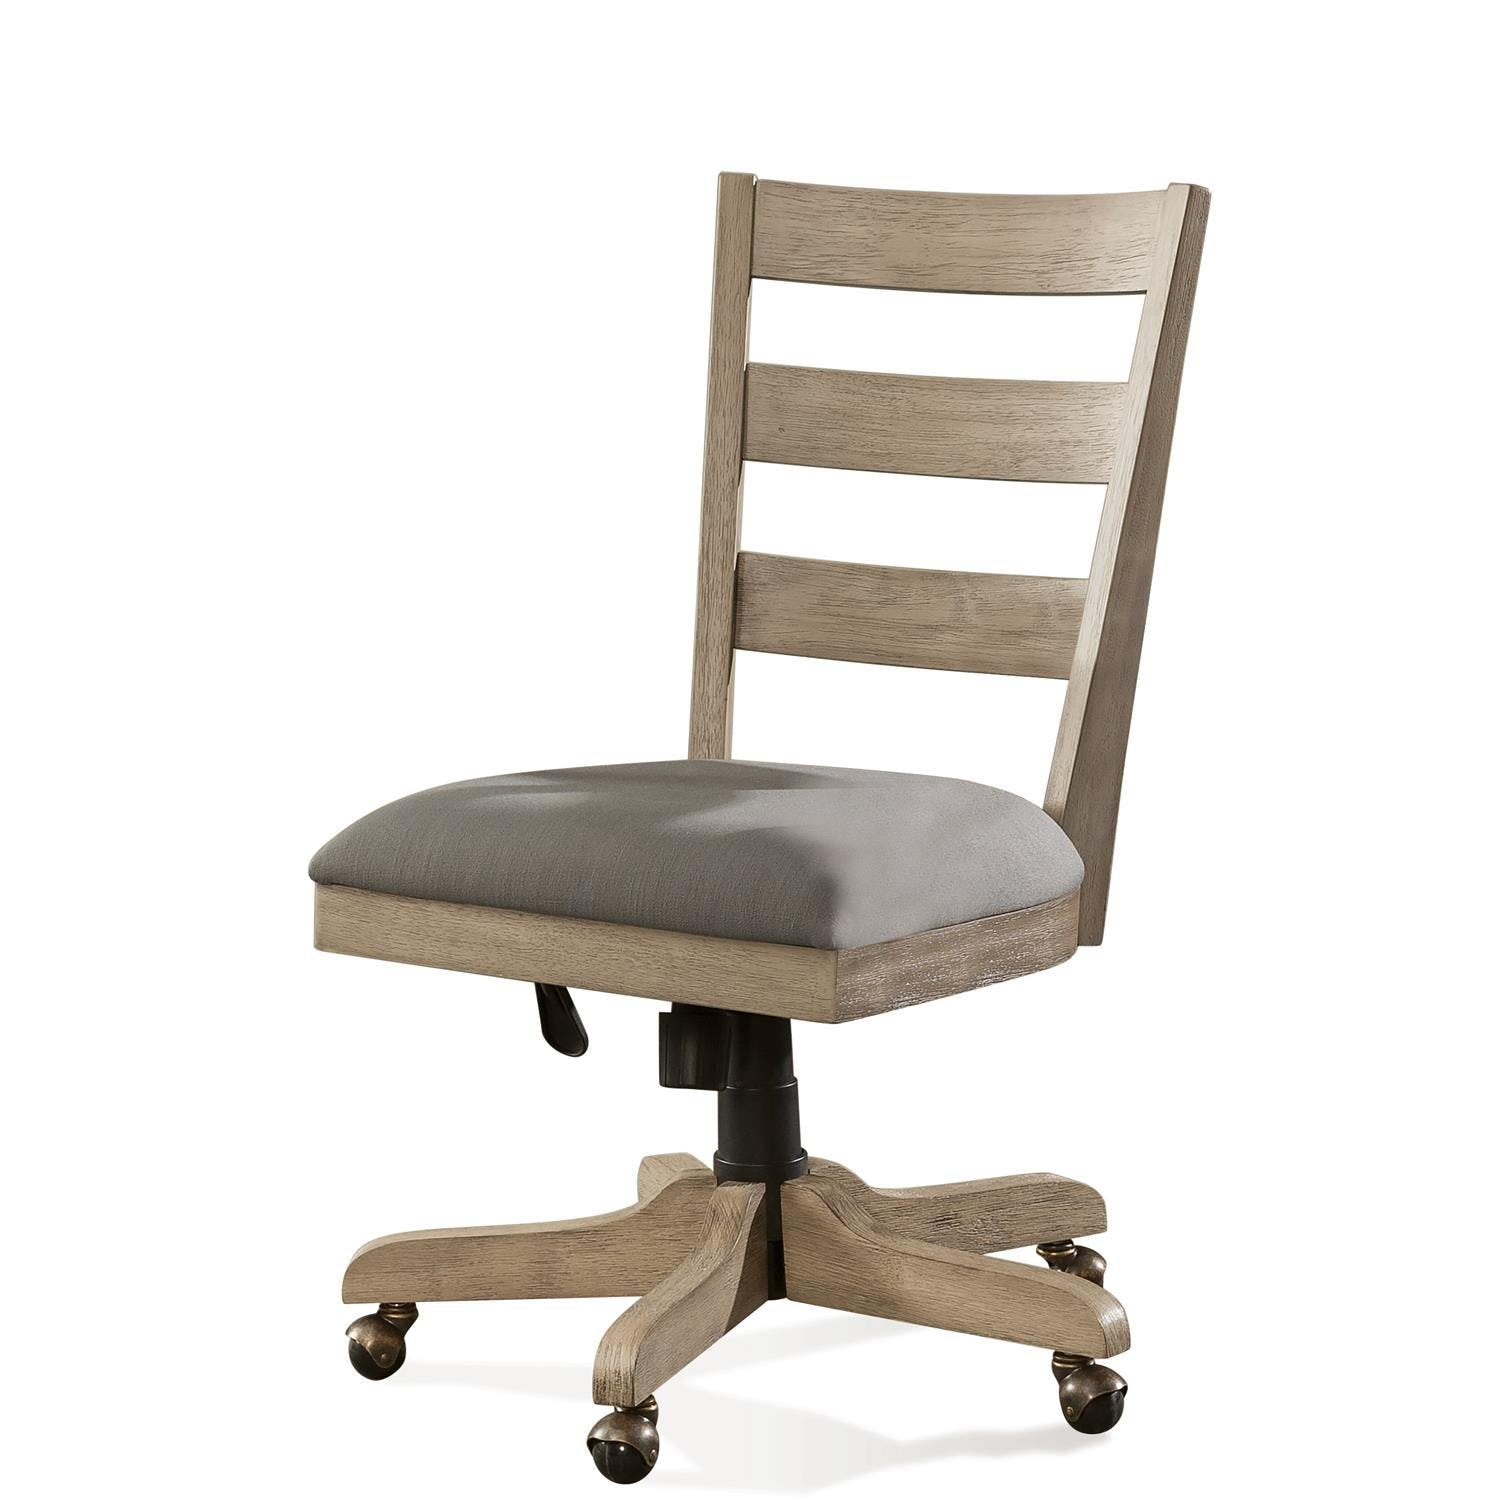 Image of: Wood Back Upholstered Desk Chair Rv28127